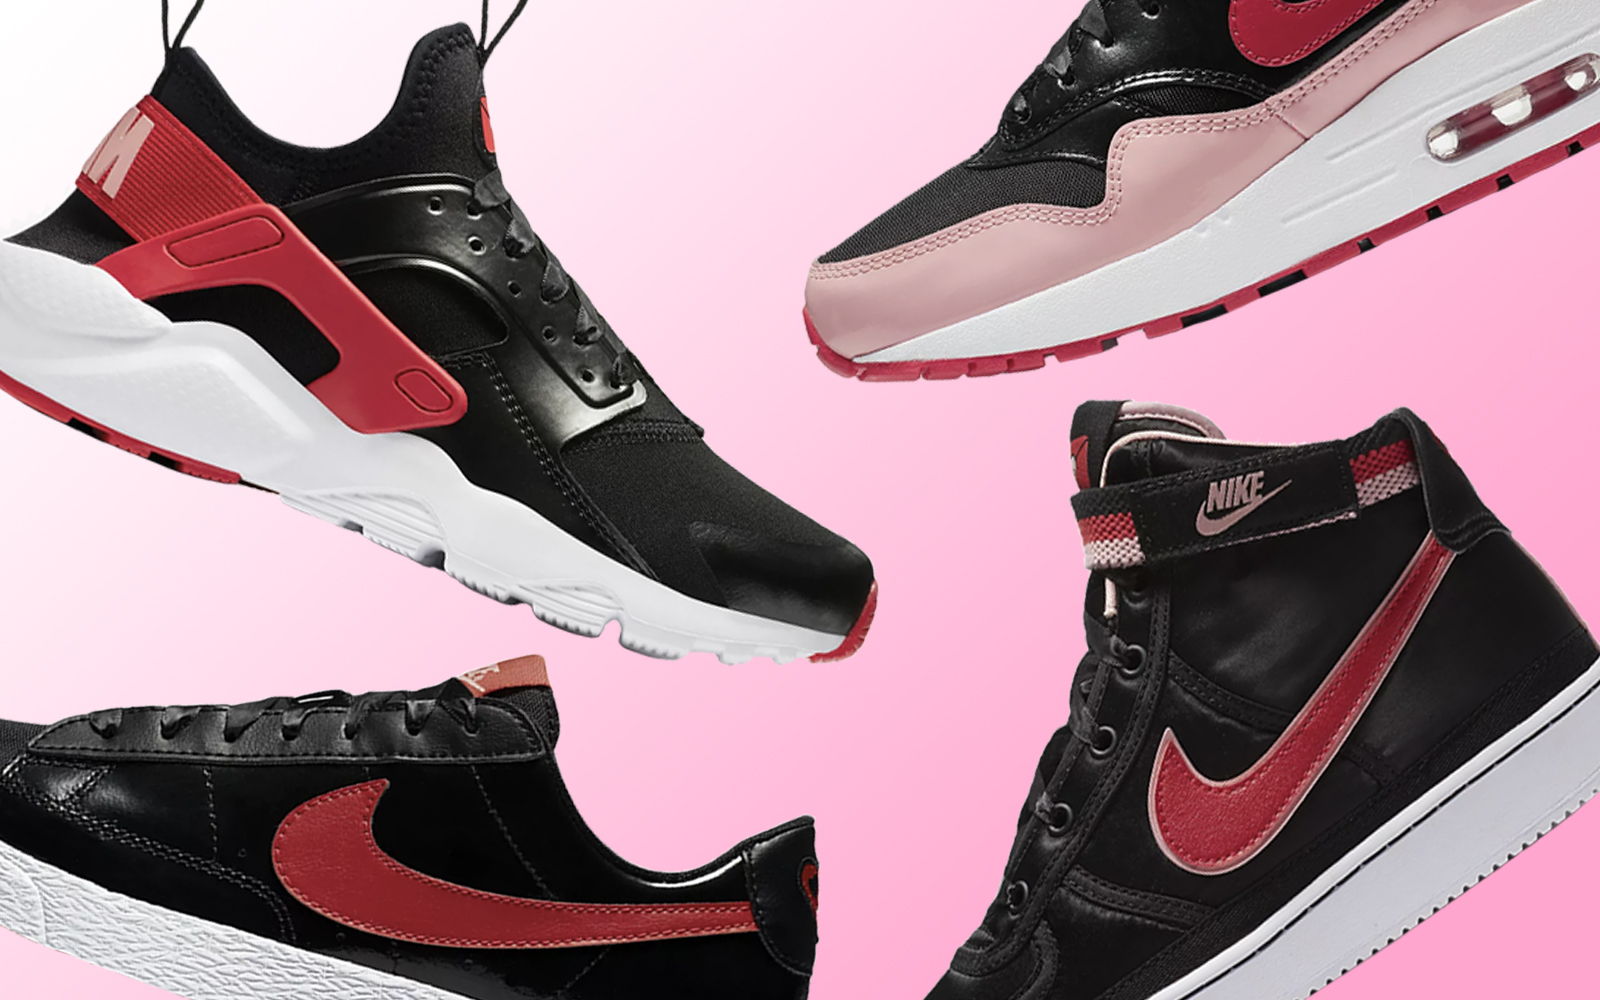 Nike Valentine's Day Kids' Sneaker Collection